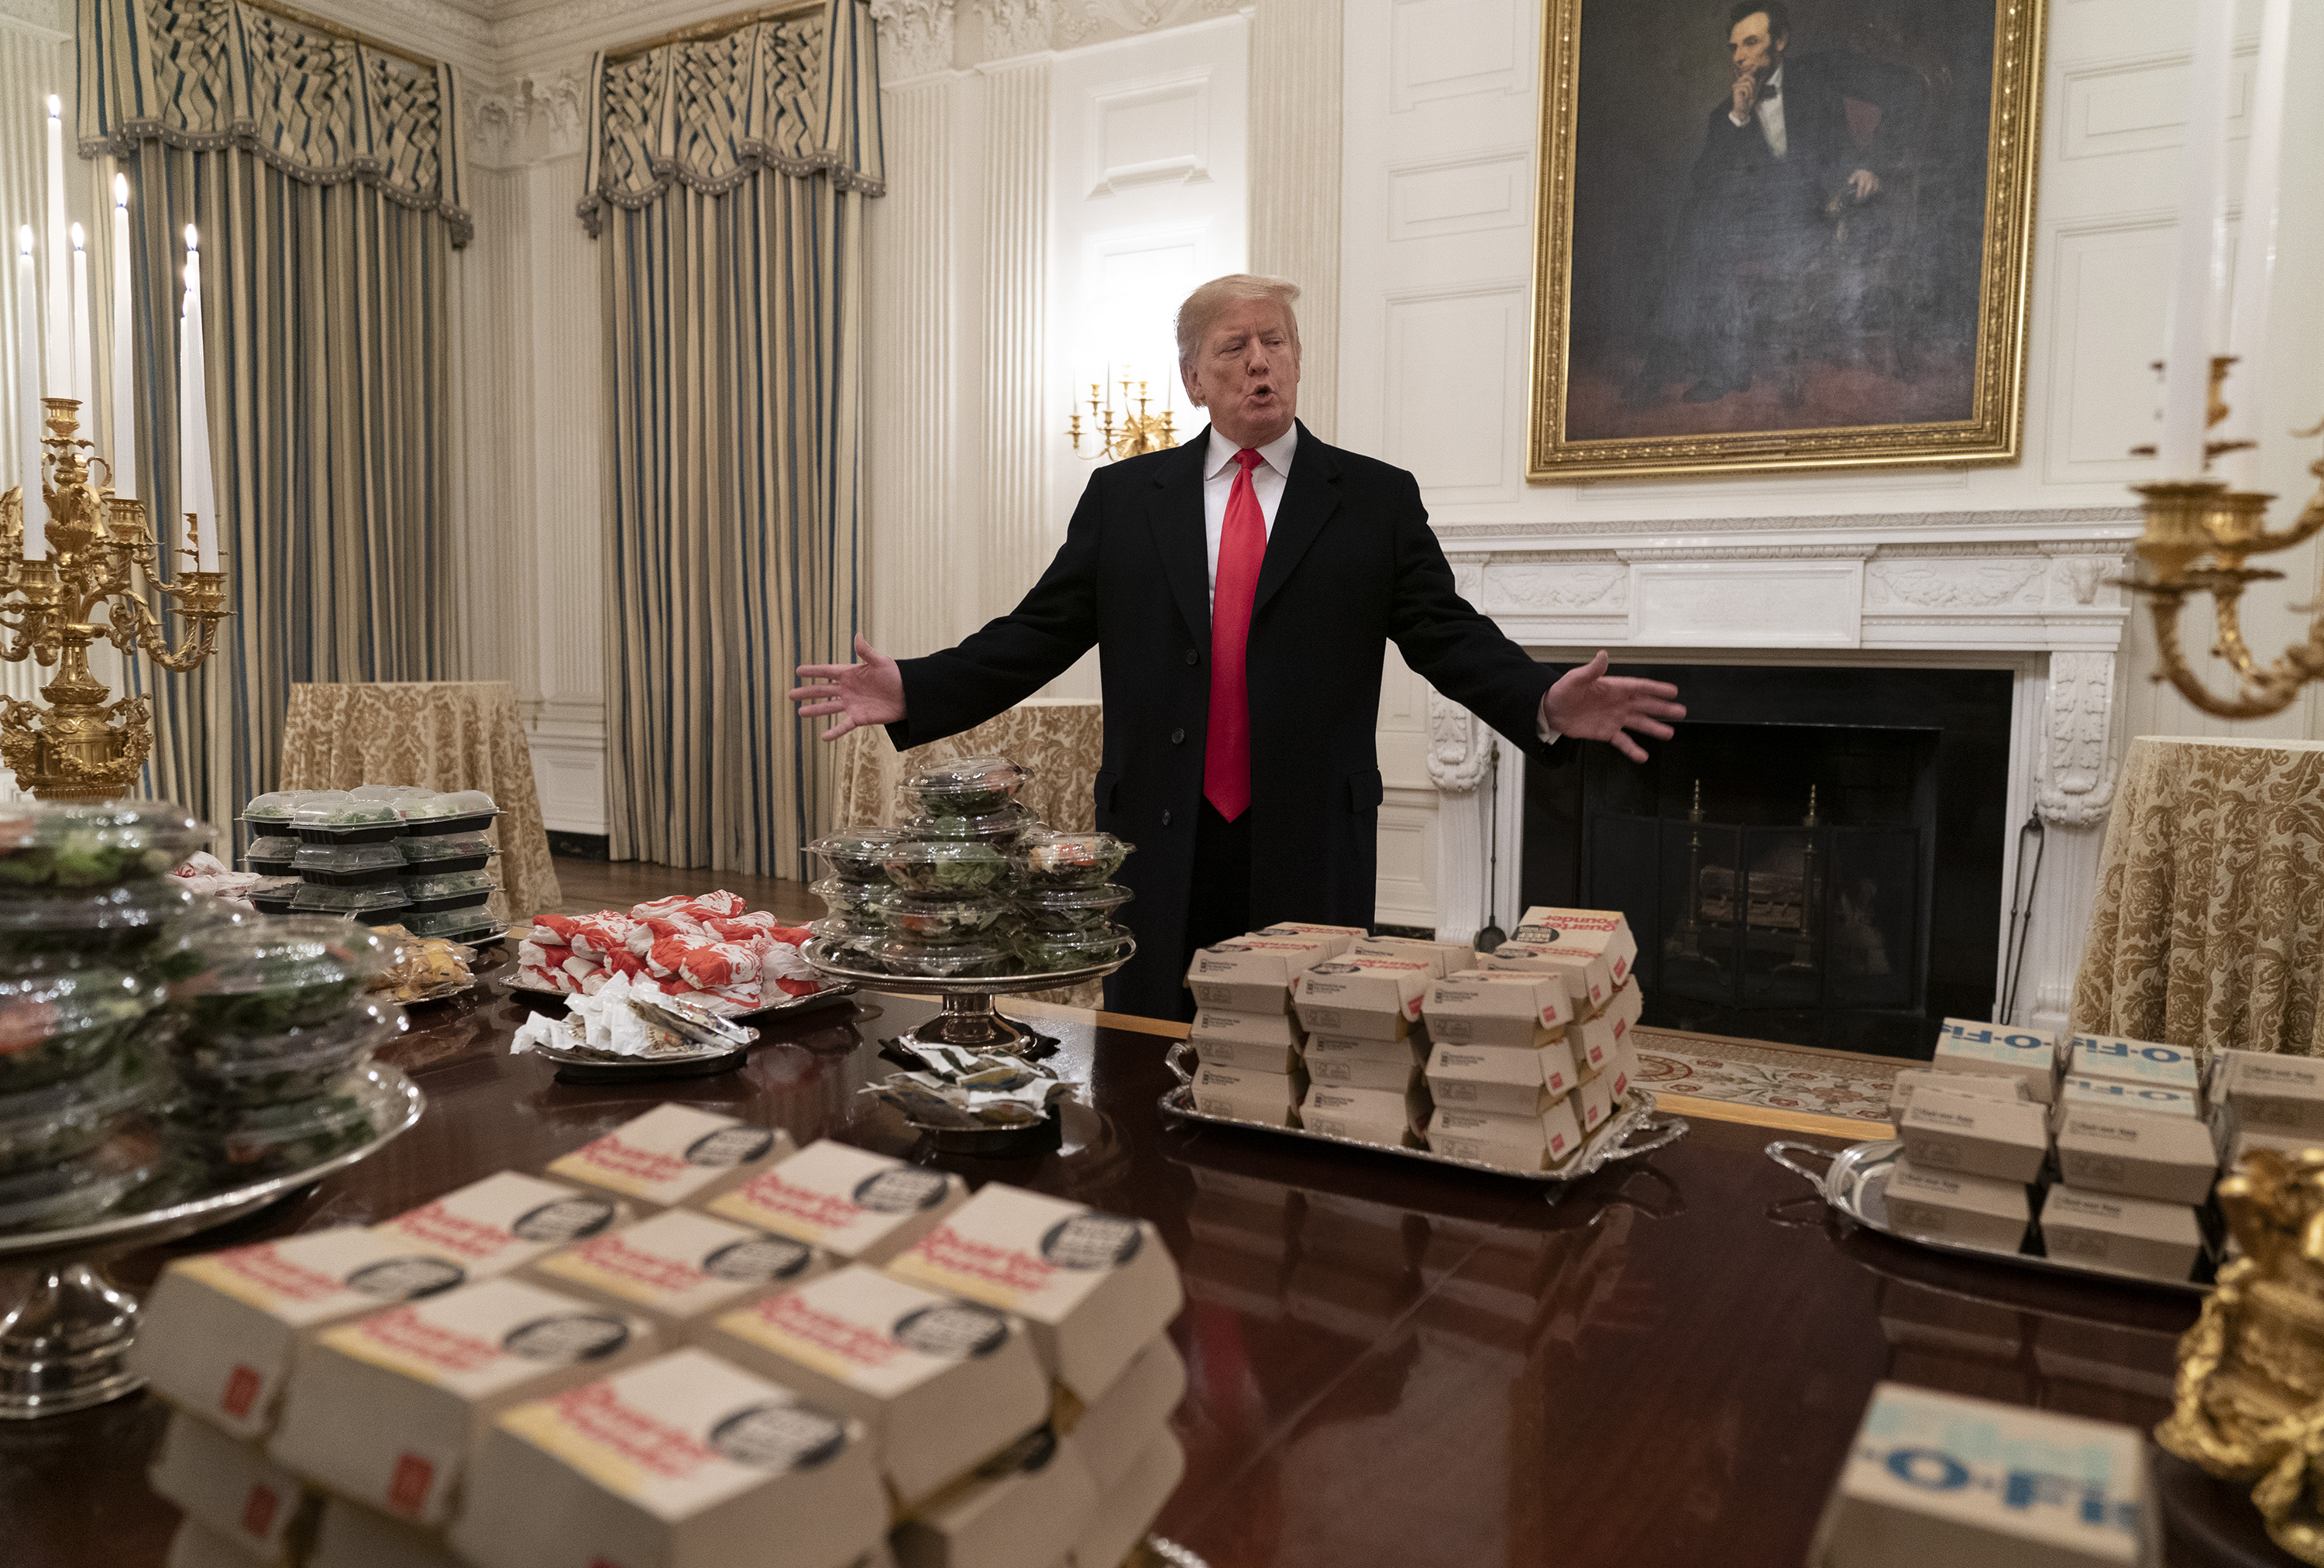 Trump served McDonald's and Burger King to the Clemson football team